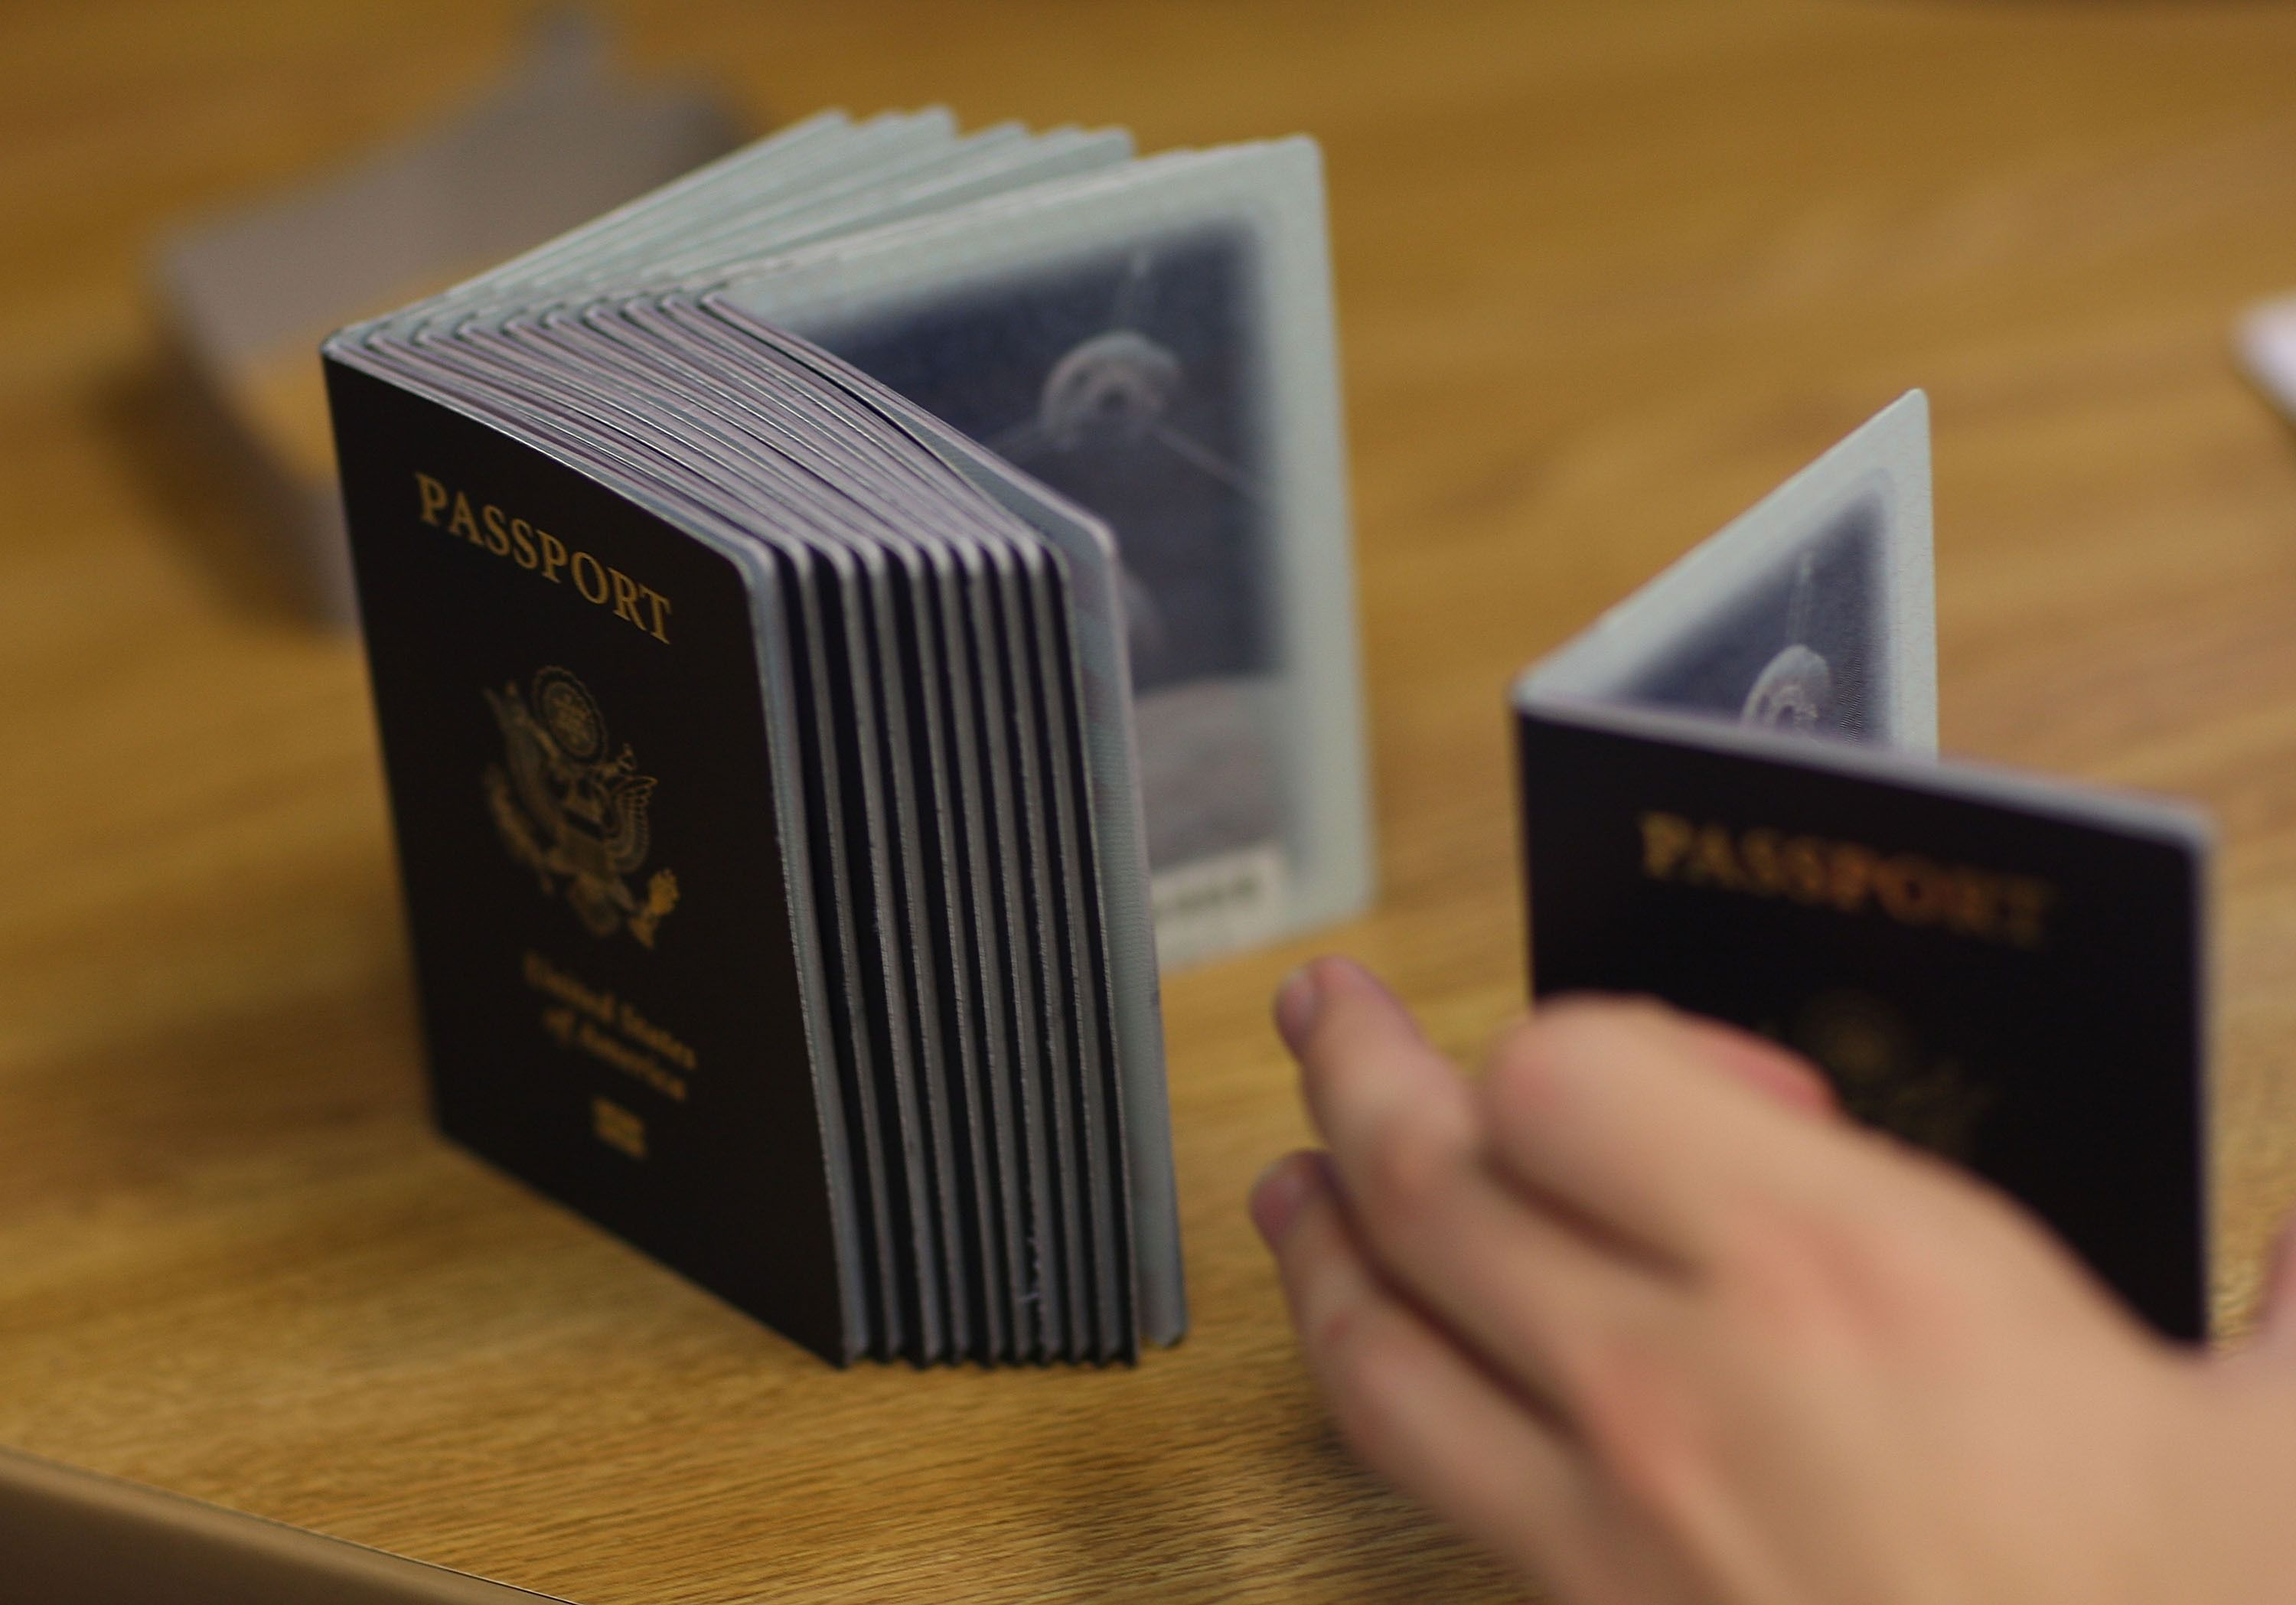 5 Passport Myths Every Traveler Can For